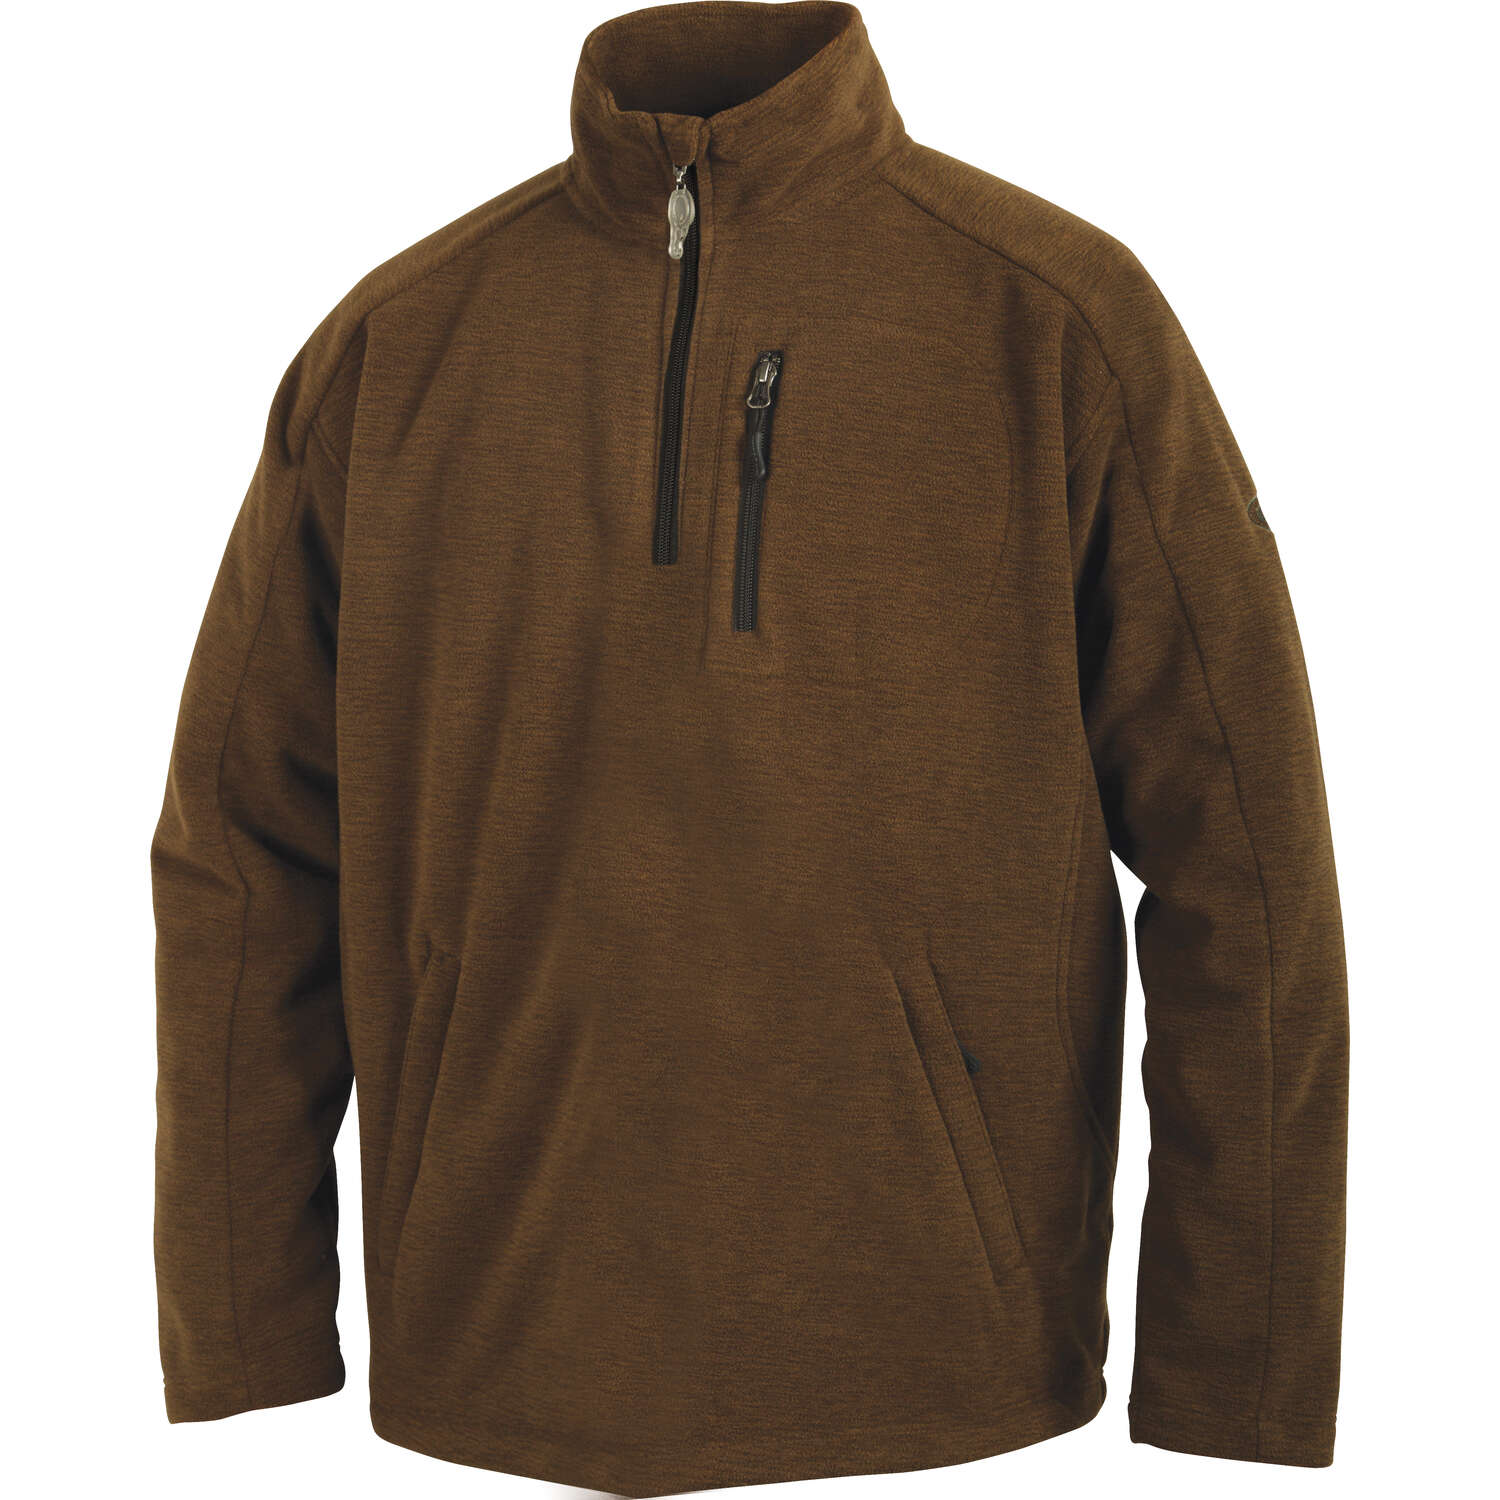 Drake  MST  M  Long Sleeve  Men's  Quarter Zip  Heathered Brown  Pullover